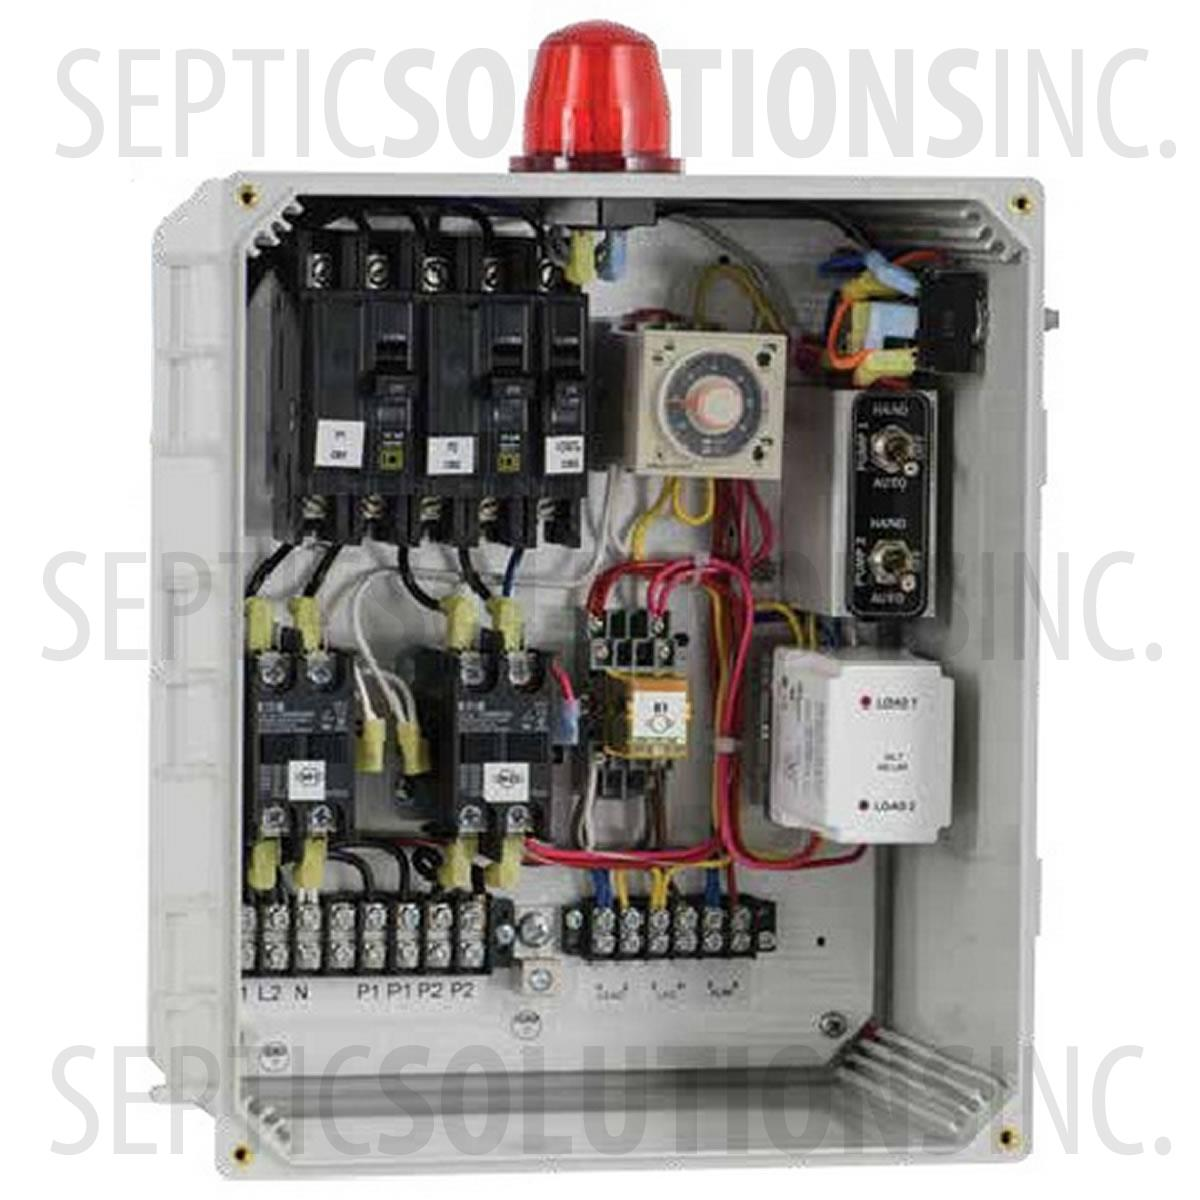 Alarm Control Panel With Pump On Sewage Pump Switch Wiring Diagram